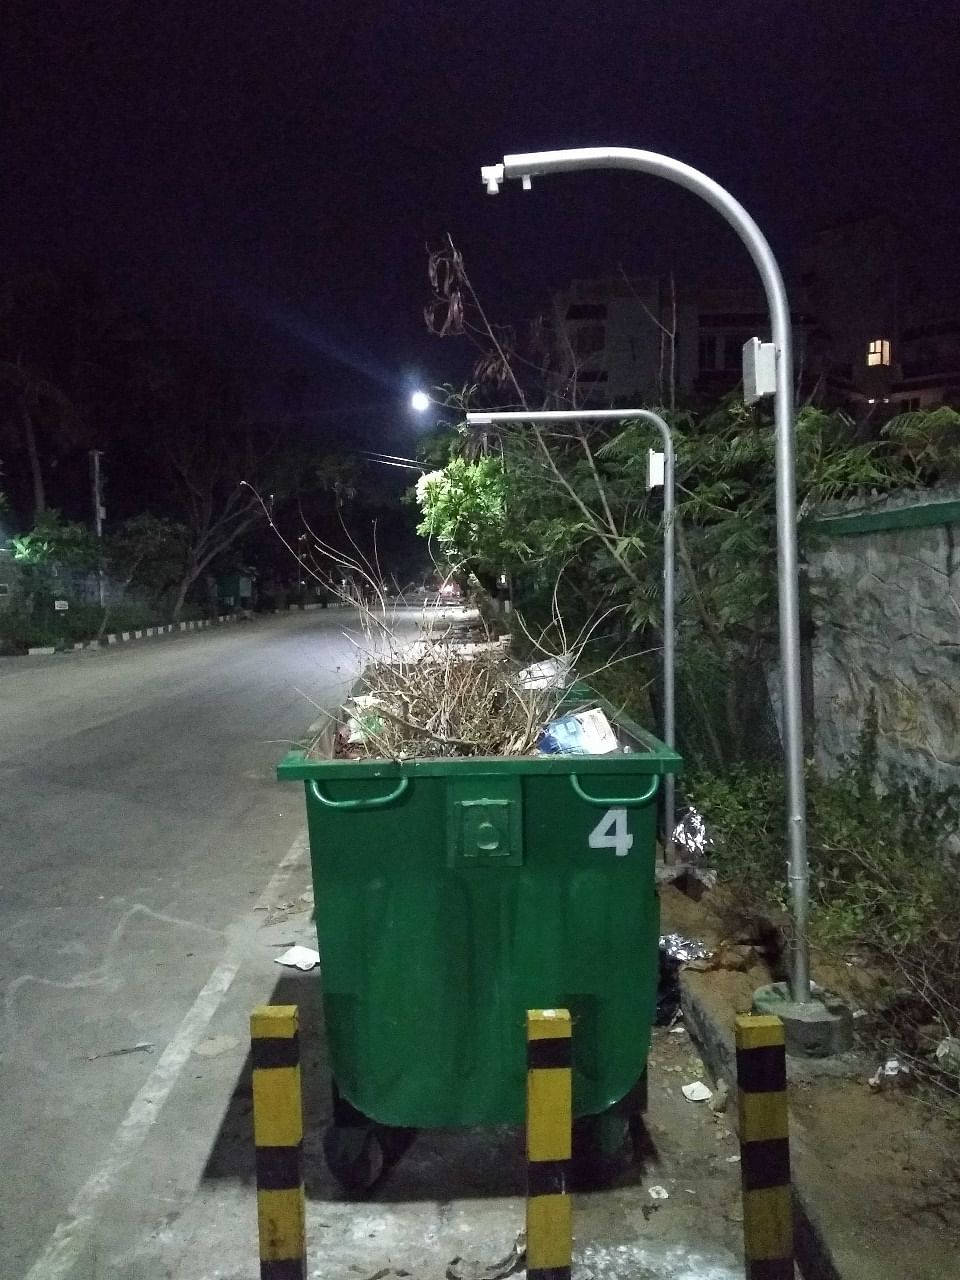 Side view of the smart bins with sensors attached to the pole. (Source: Mahek Shah)